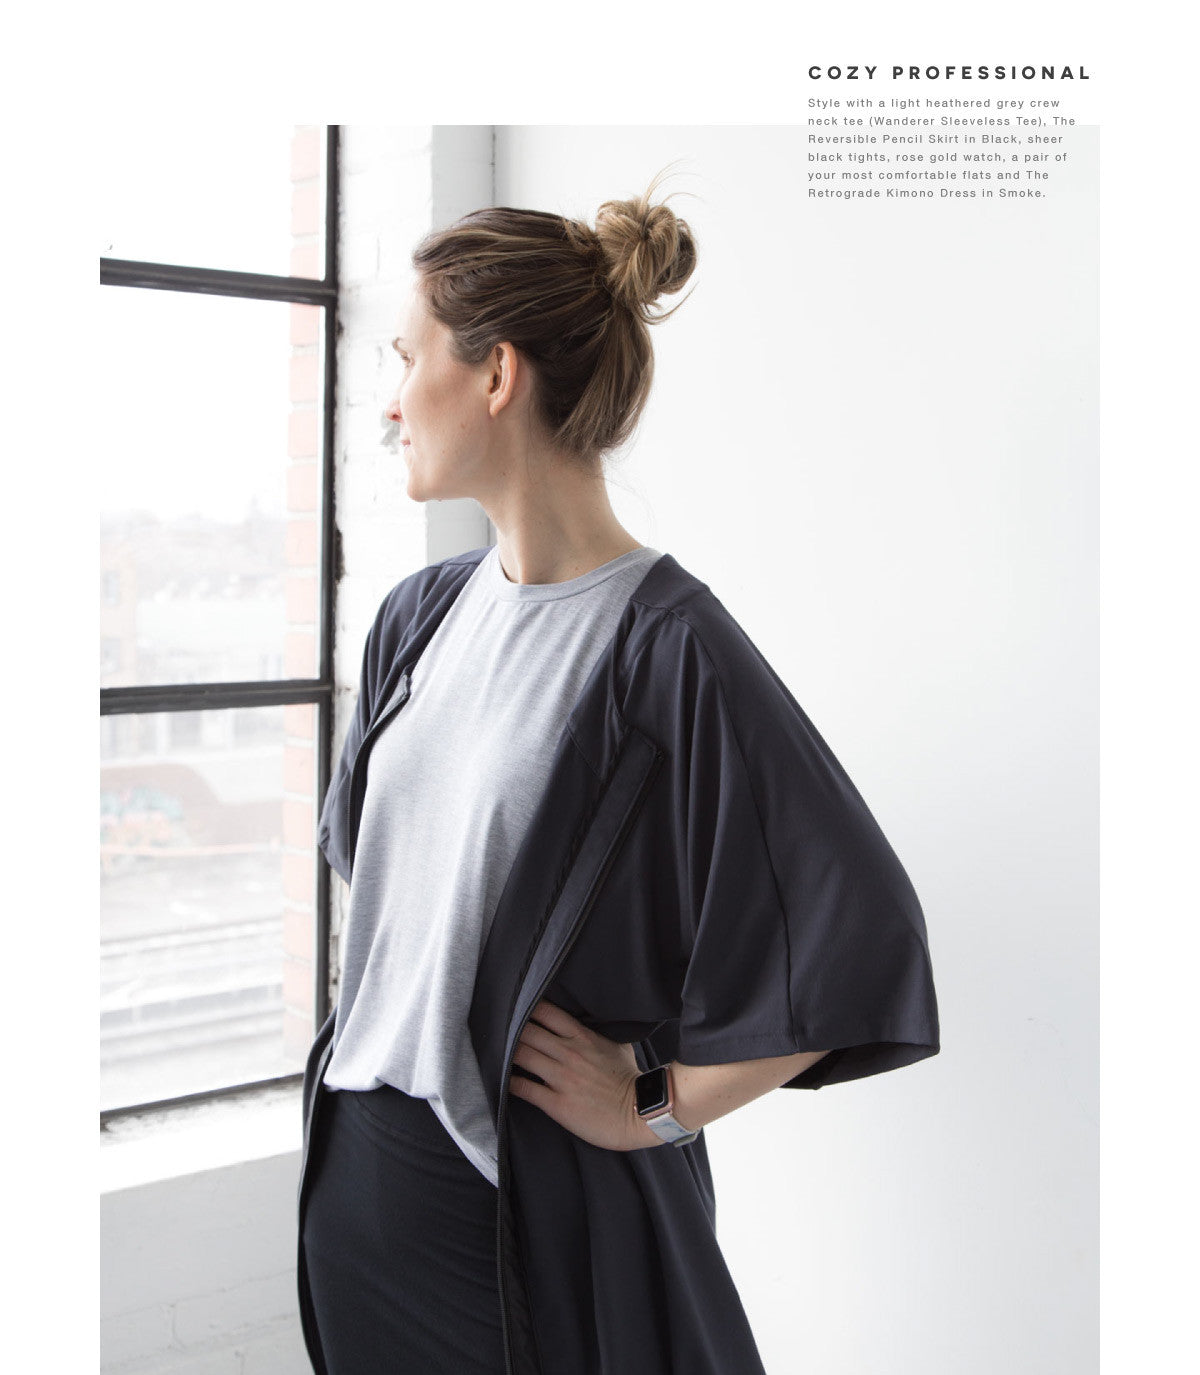 the retrograde kimono a comfortable cozy and professional look for the office